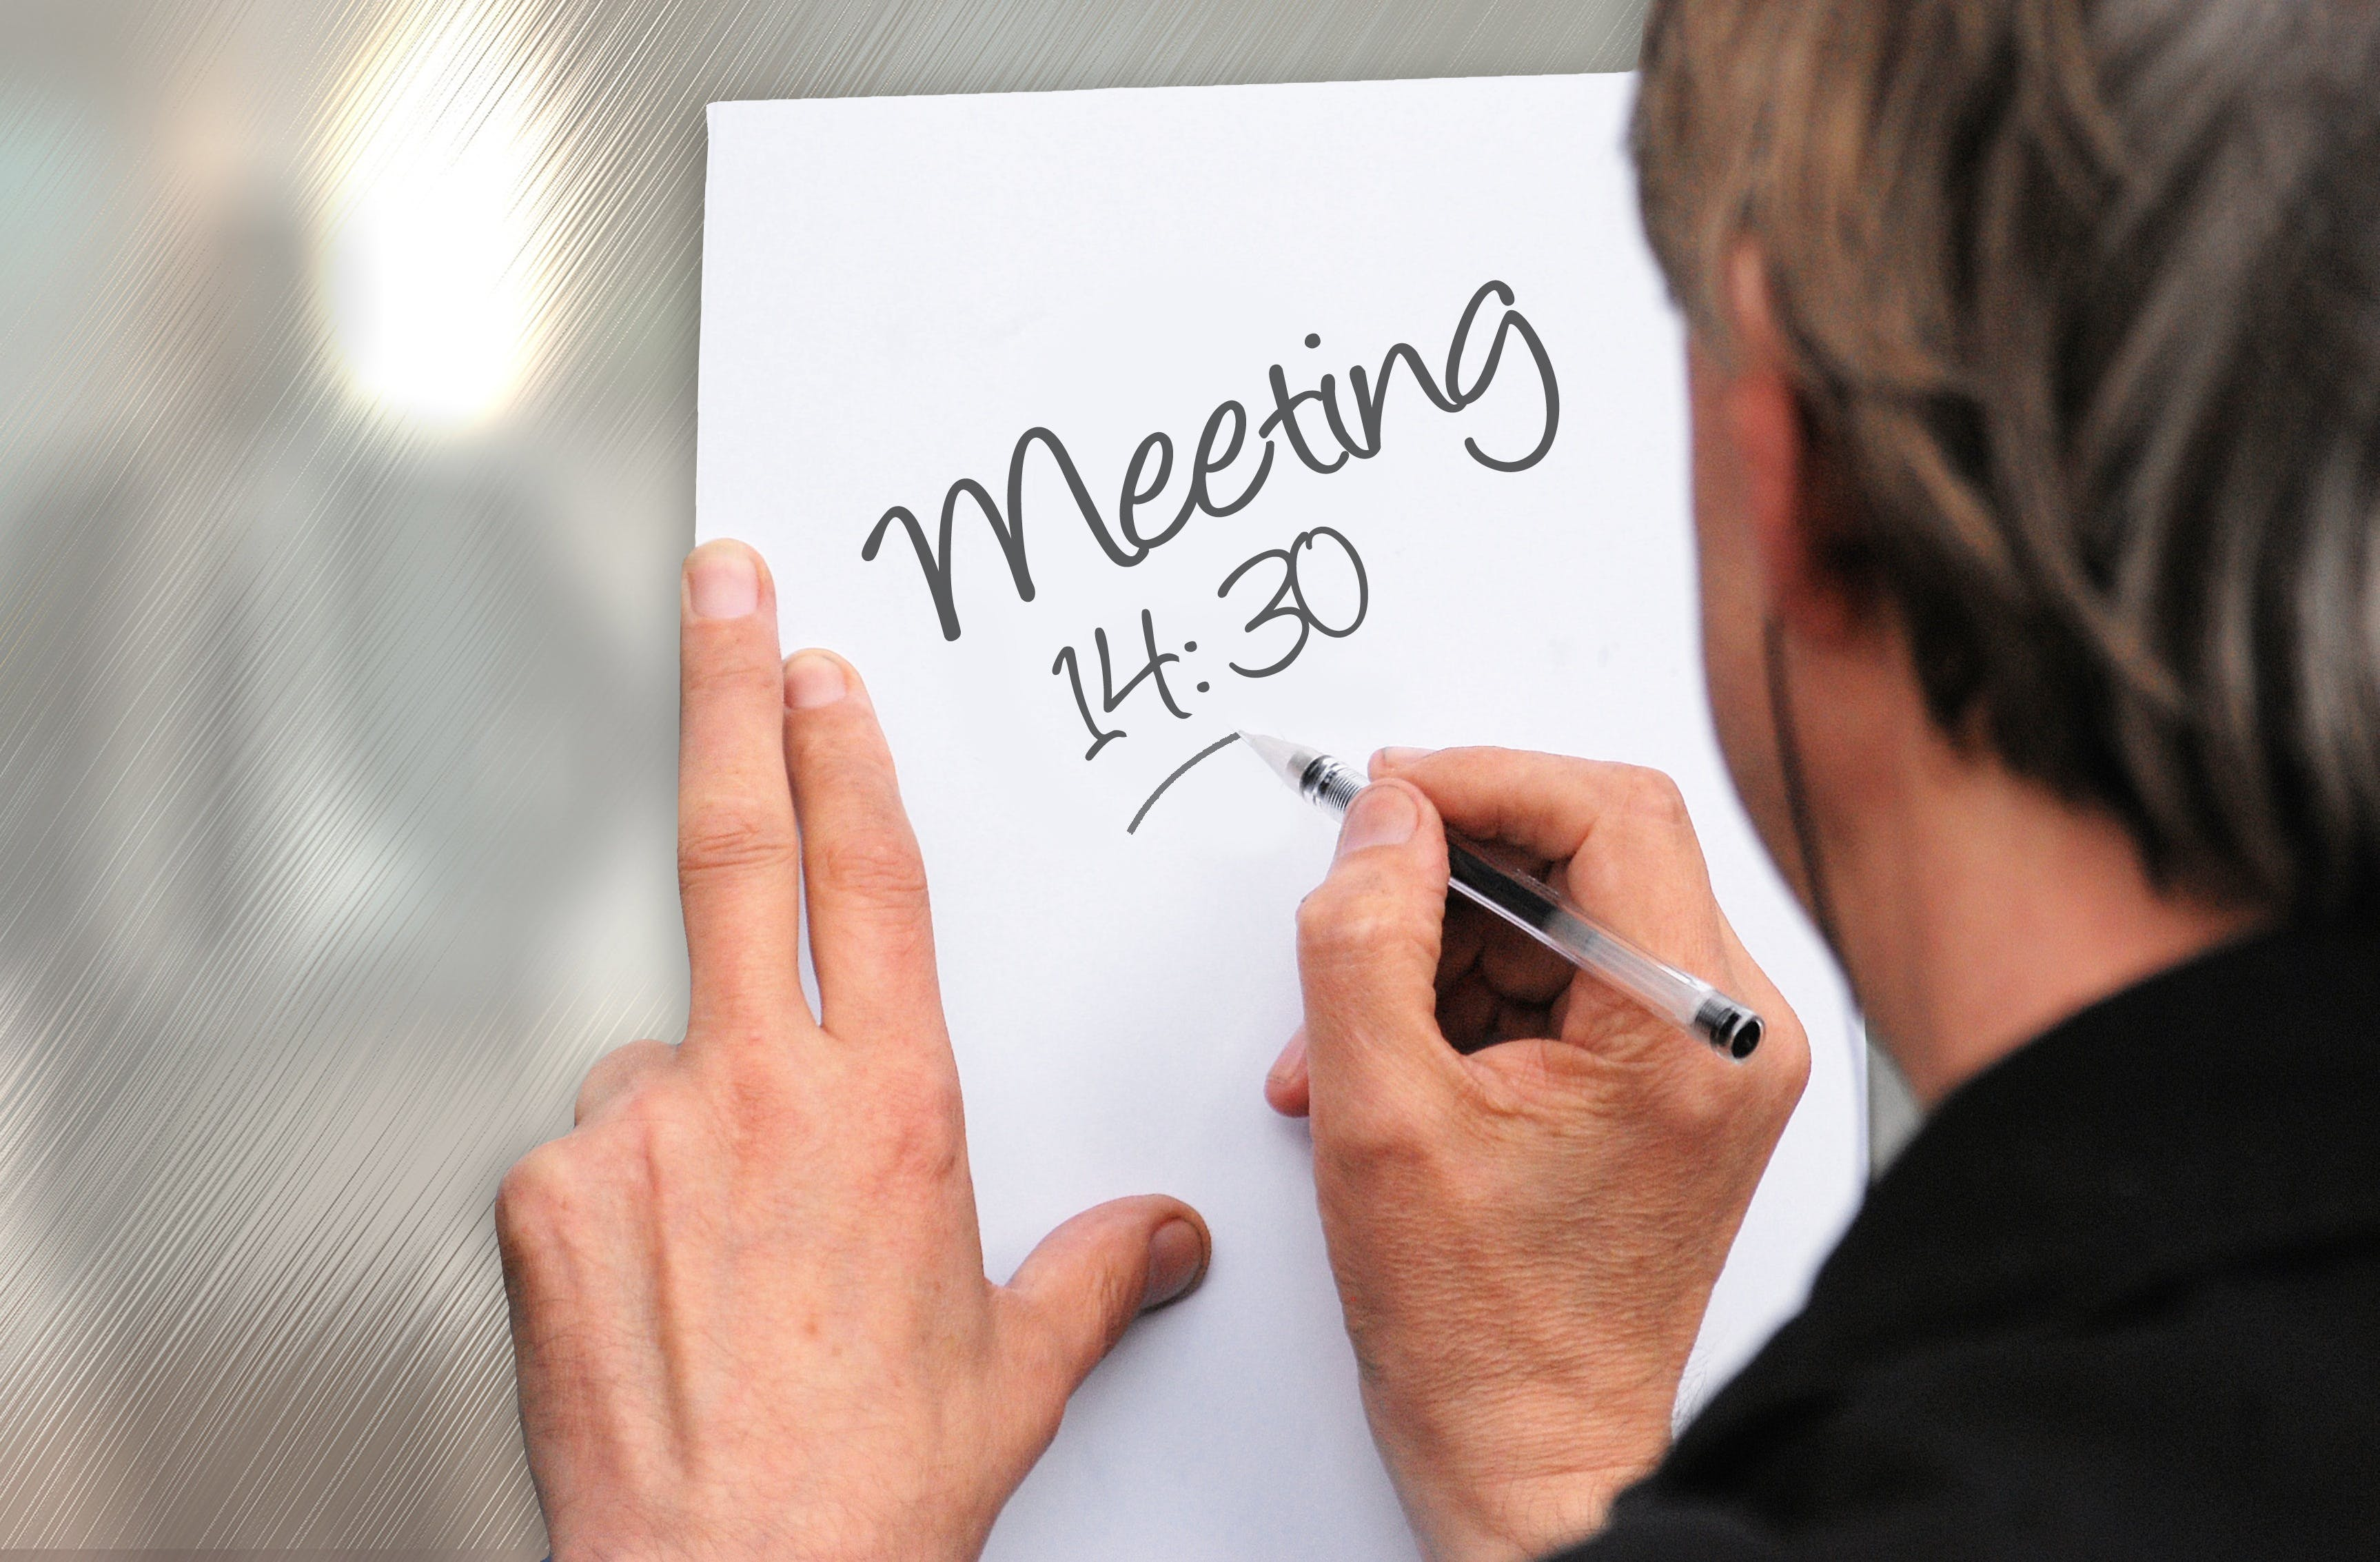 Man Writing on Meeting 14:30 on Paper